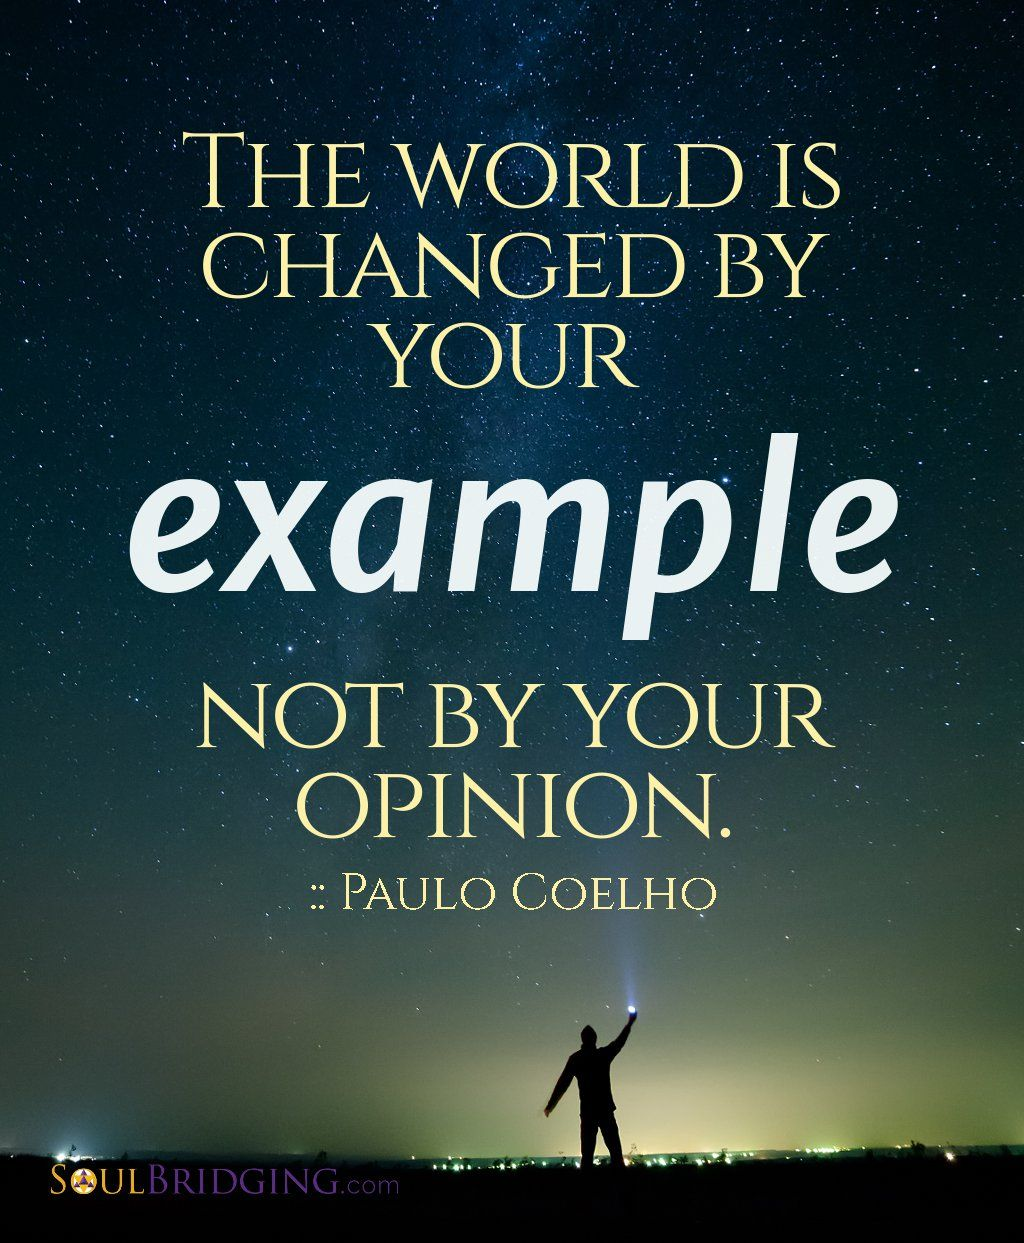 "Quotes About Changing The World: ""The World Is Changed By Your Example, Not By Your Opinion"